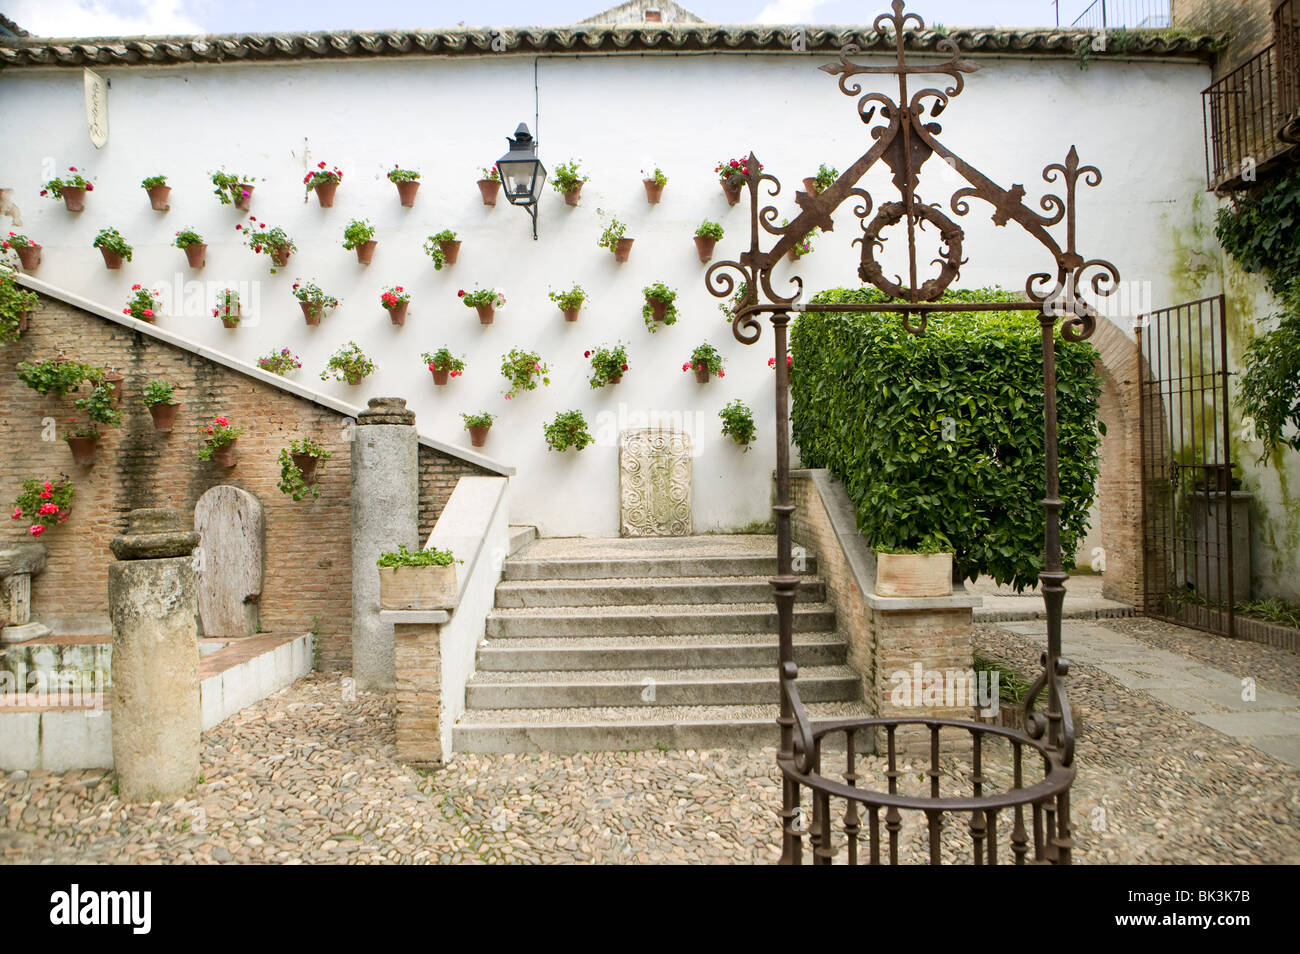 House andalucia Cordoba Spain patio typical culture well sefarat - Stock Image